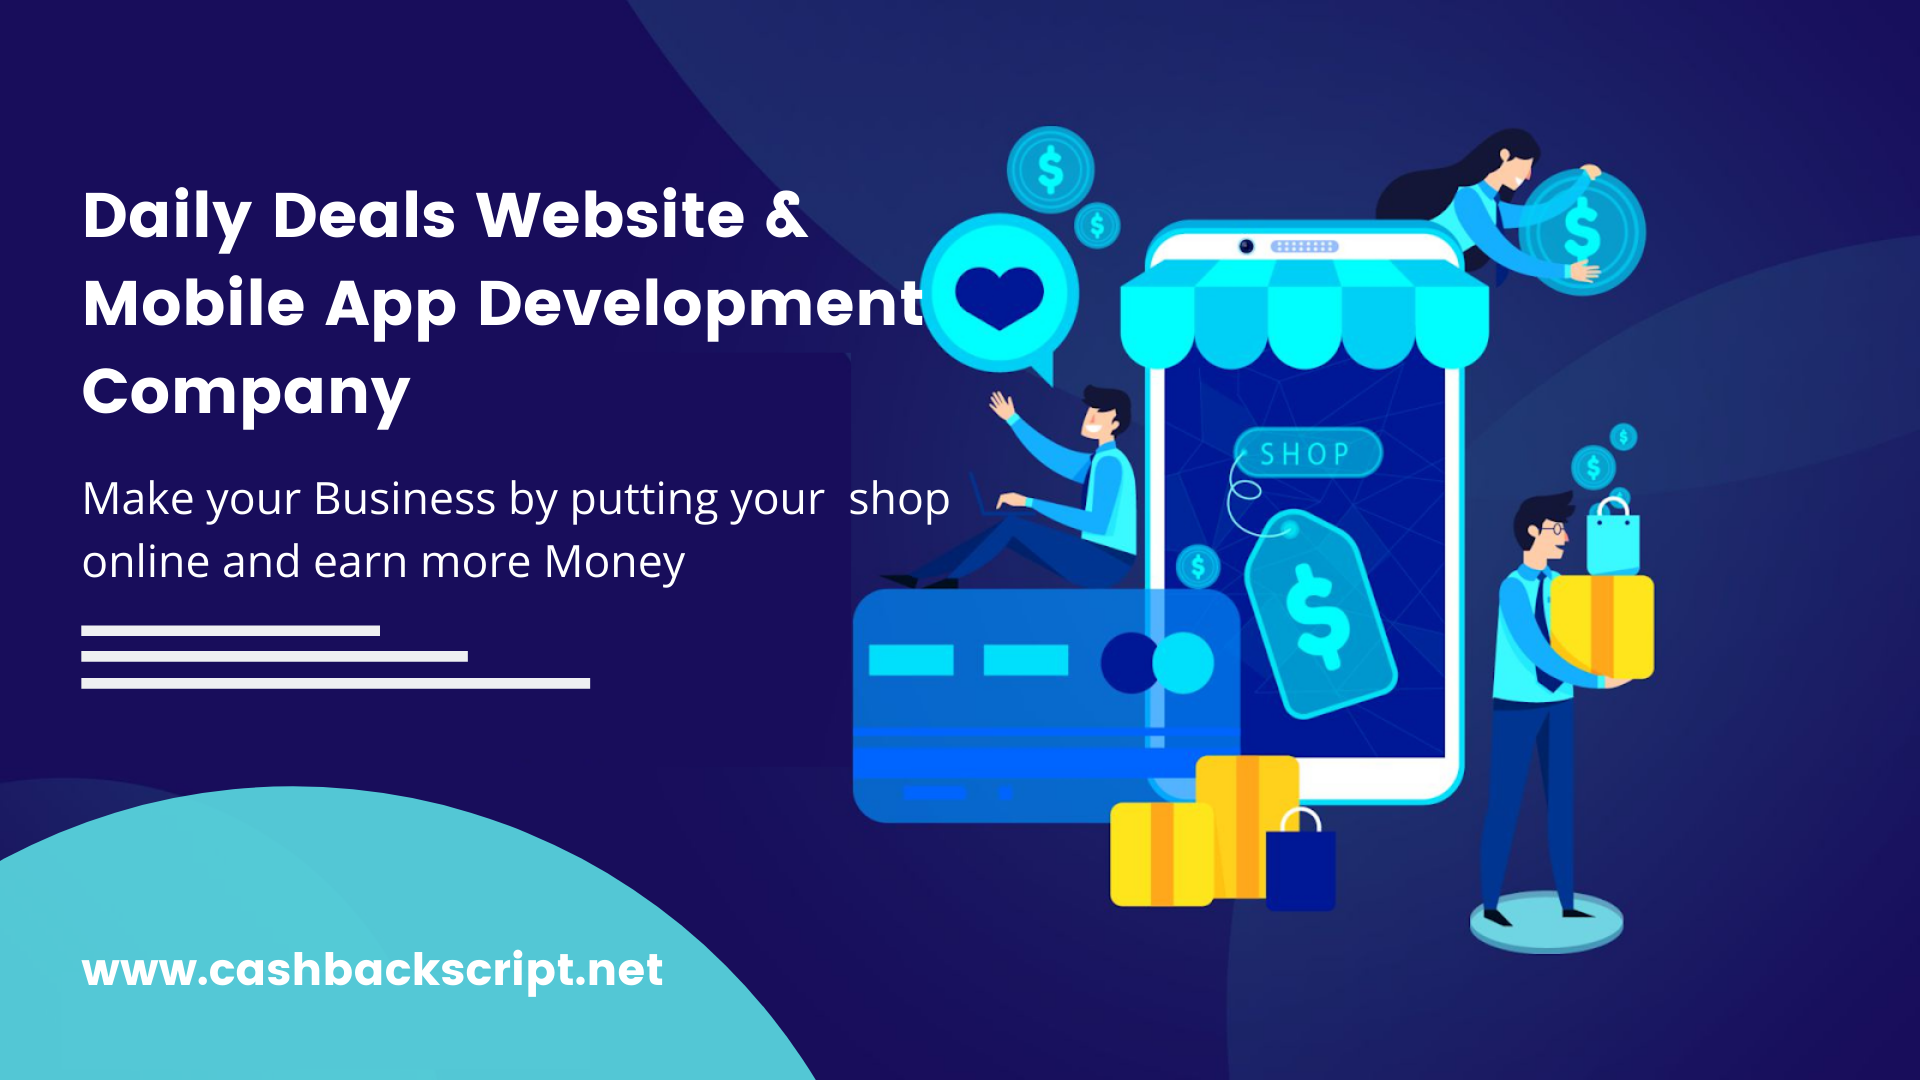 Daily Deals Website & Mobile App Development Company